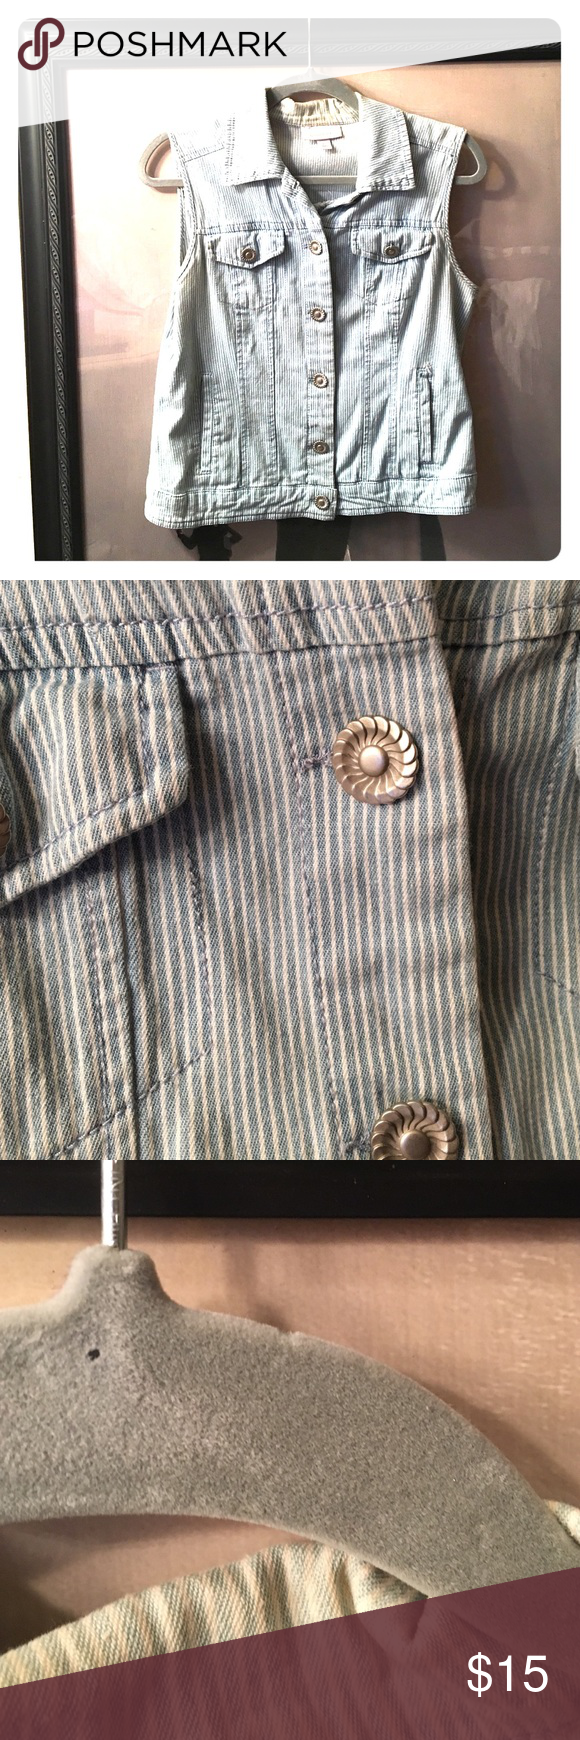 Cute Jean Vest With Flower Button Detail In good condition, some wear on inside of collie but not noticeable when worn. Dress Barn Jackets & Coats Vests